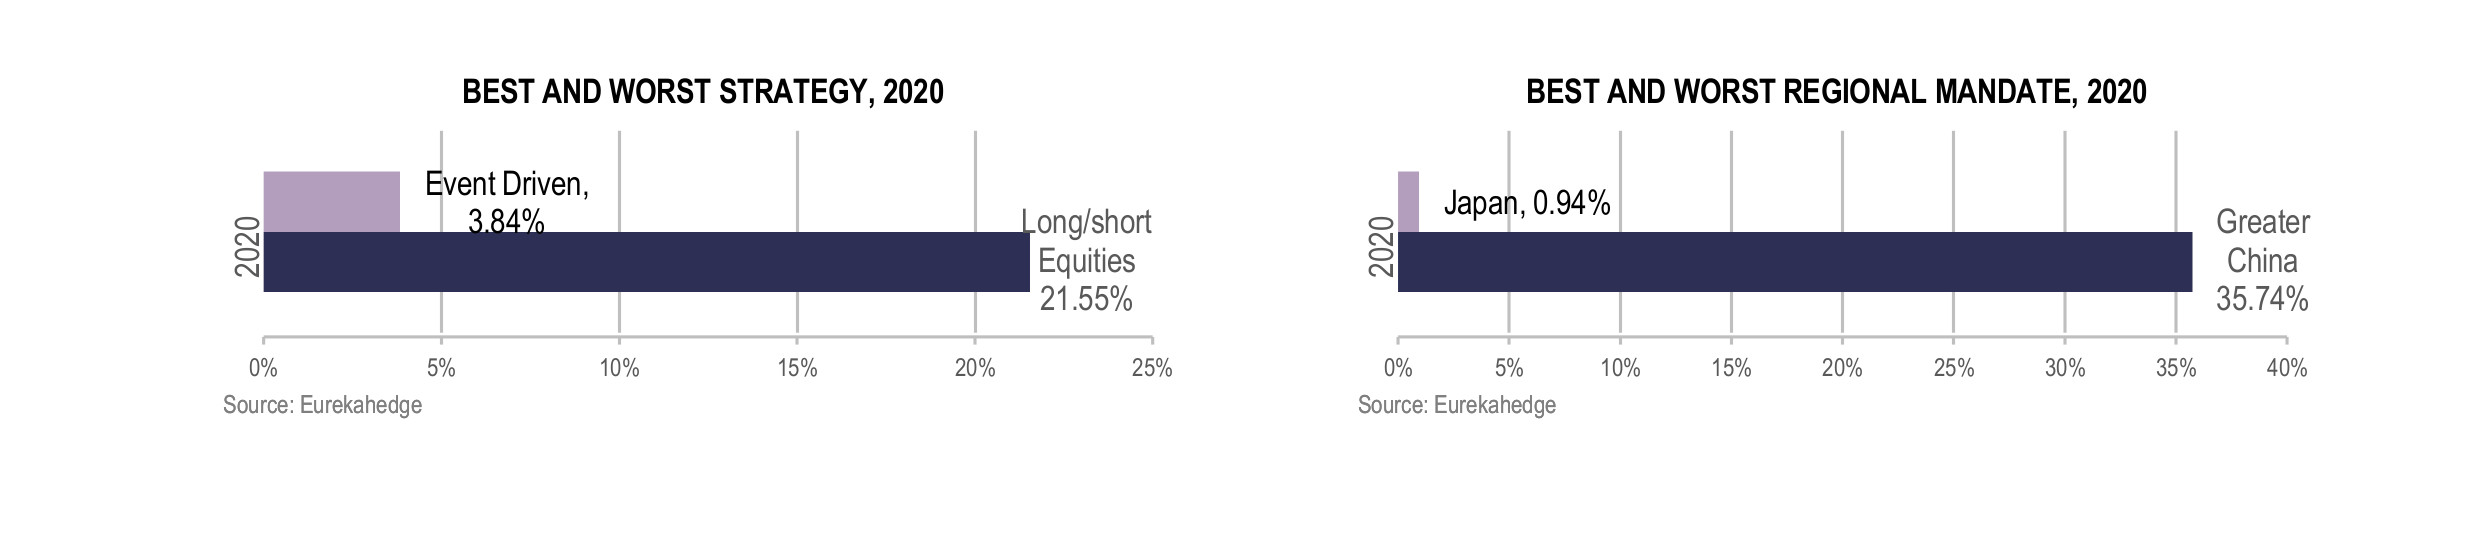 Asian Hedge Funds Infographic February 2021 - best and worst strategy and regional mandate